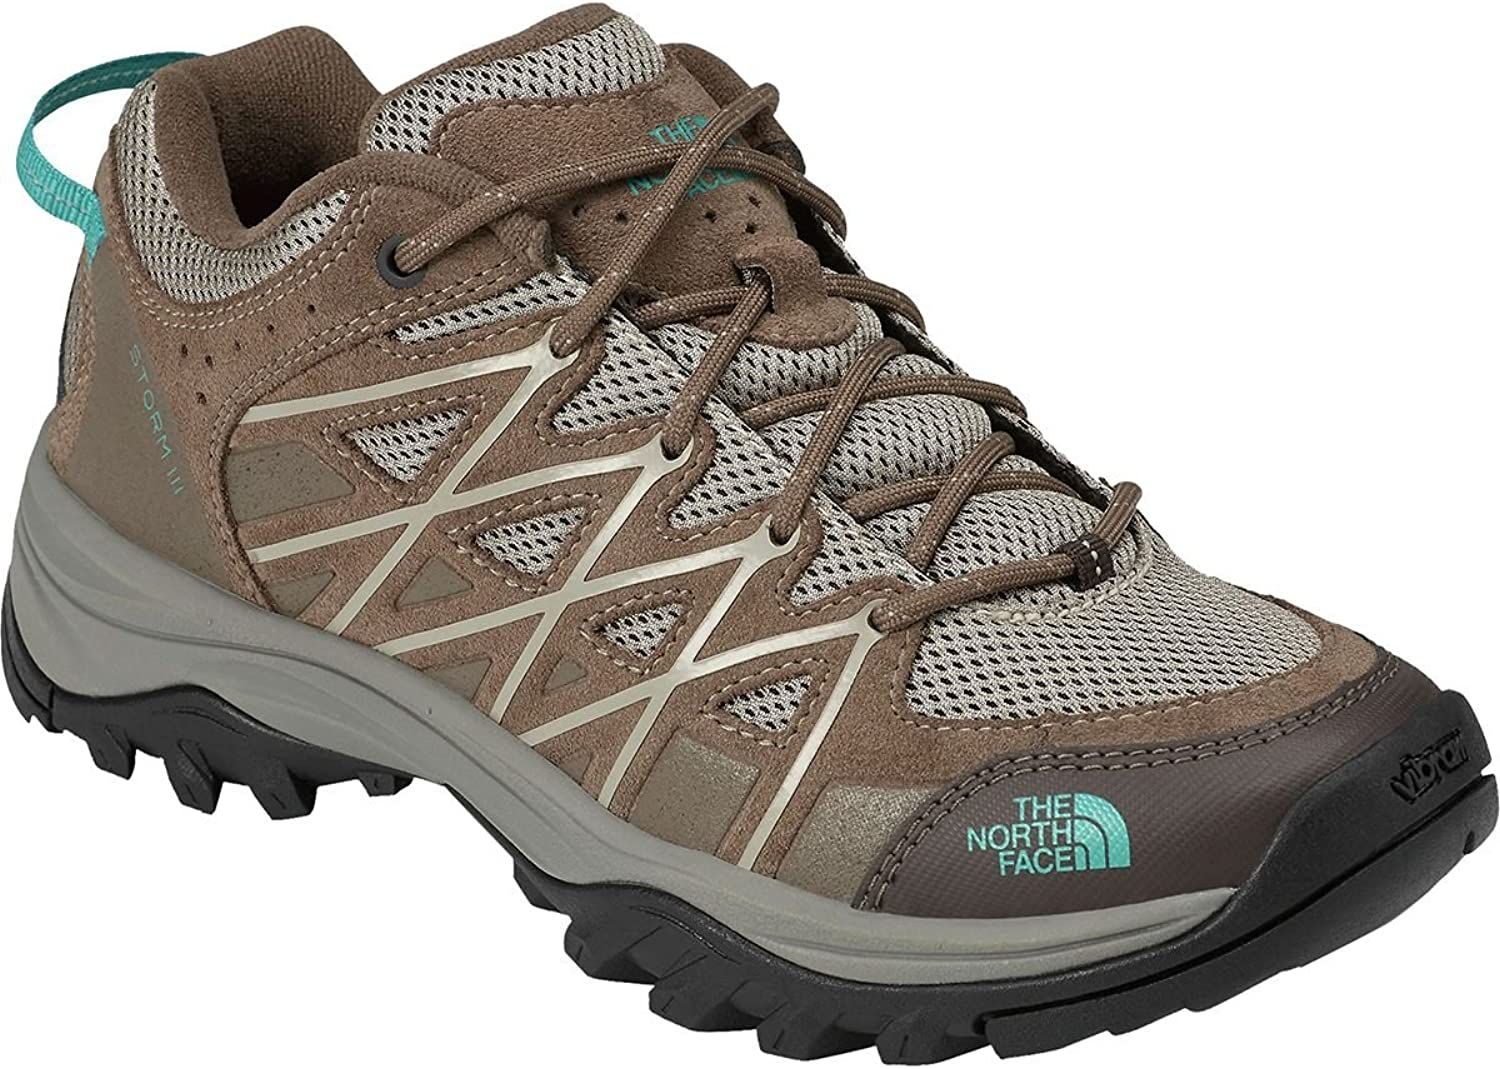 The North Face Women's Storm Iii - -